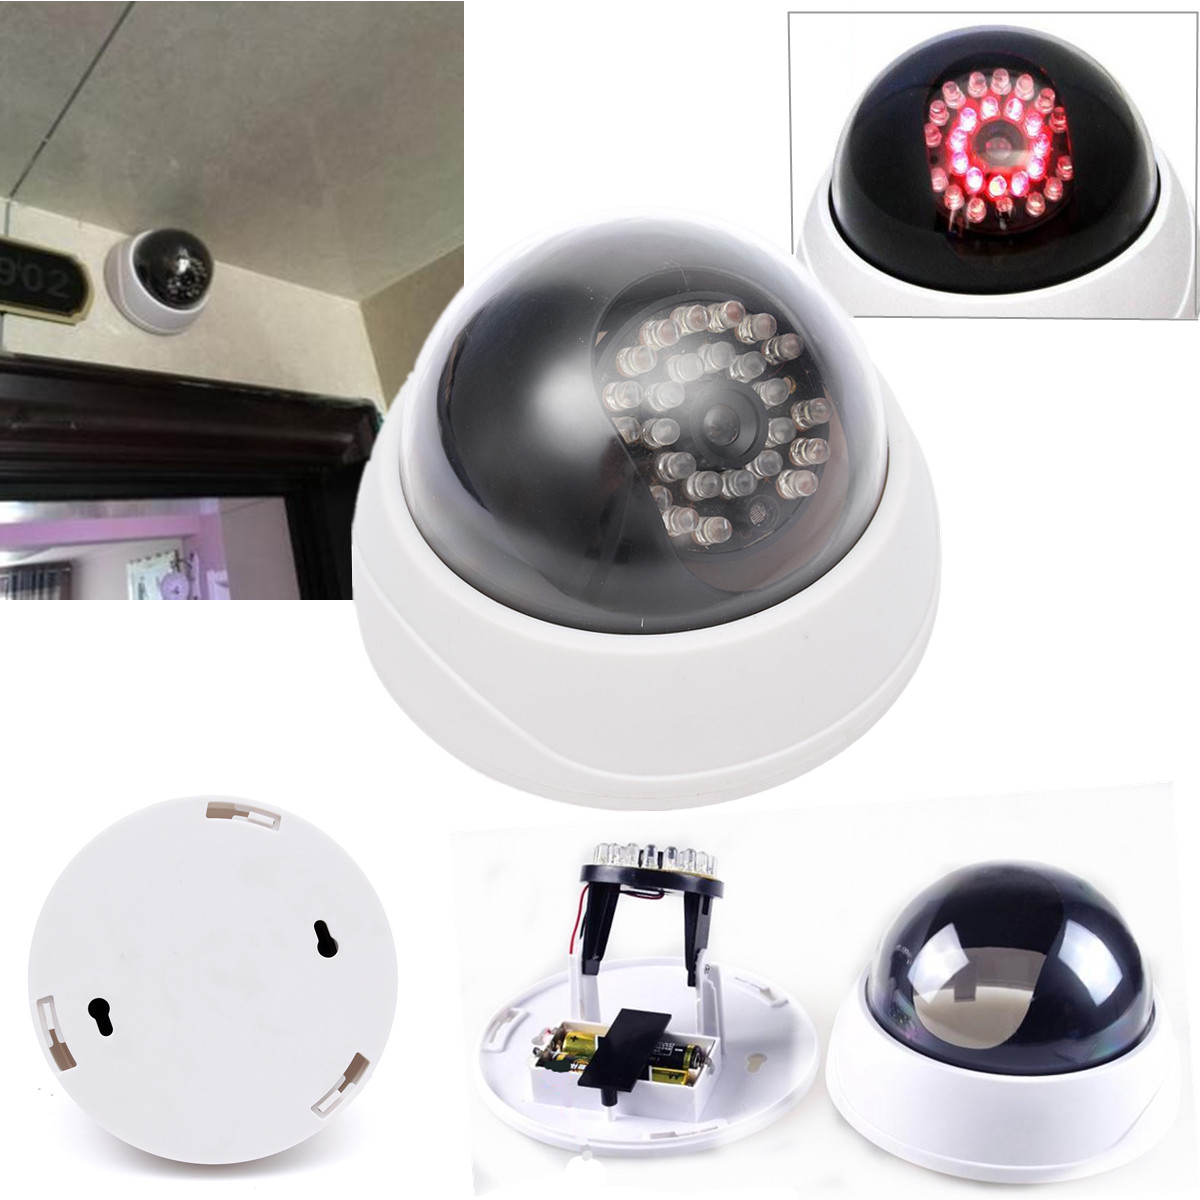 Top Quality Dummy Dome Cctv Security Camera Flashing Led